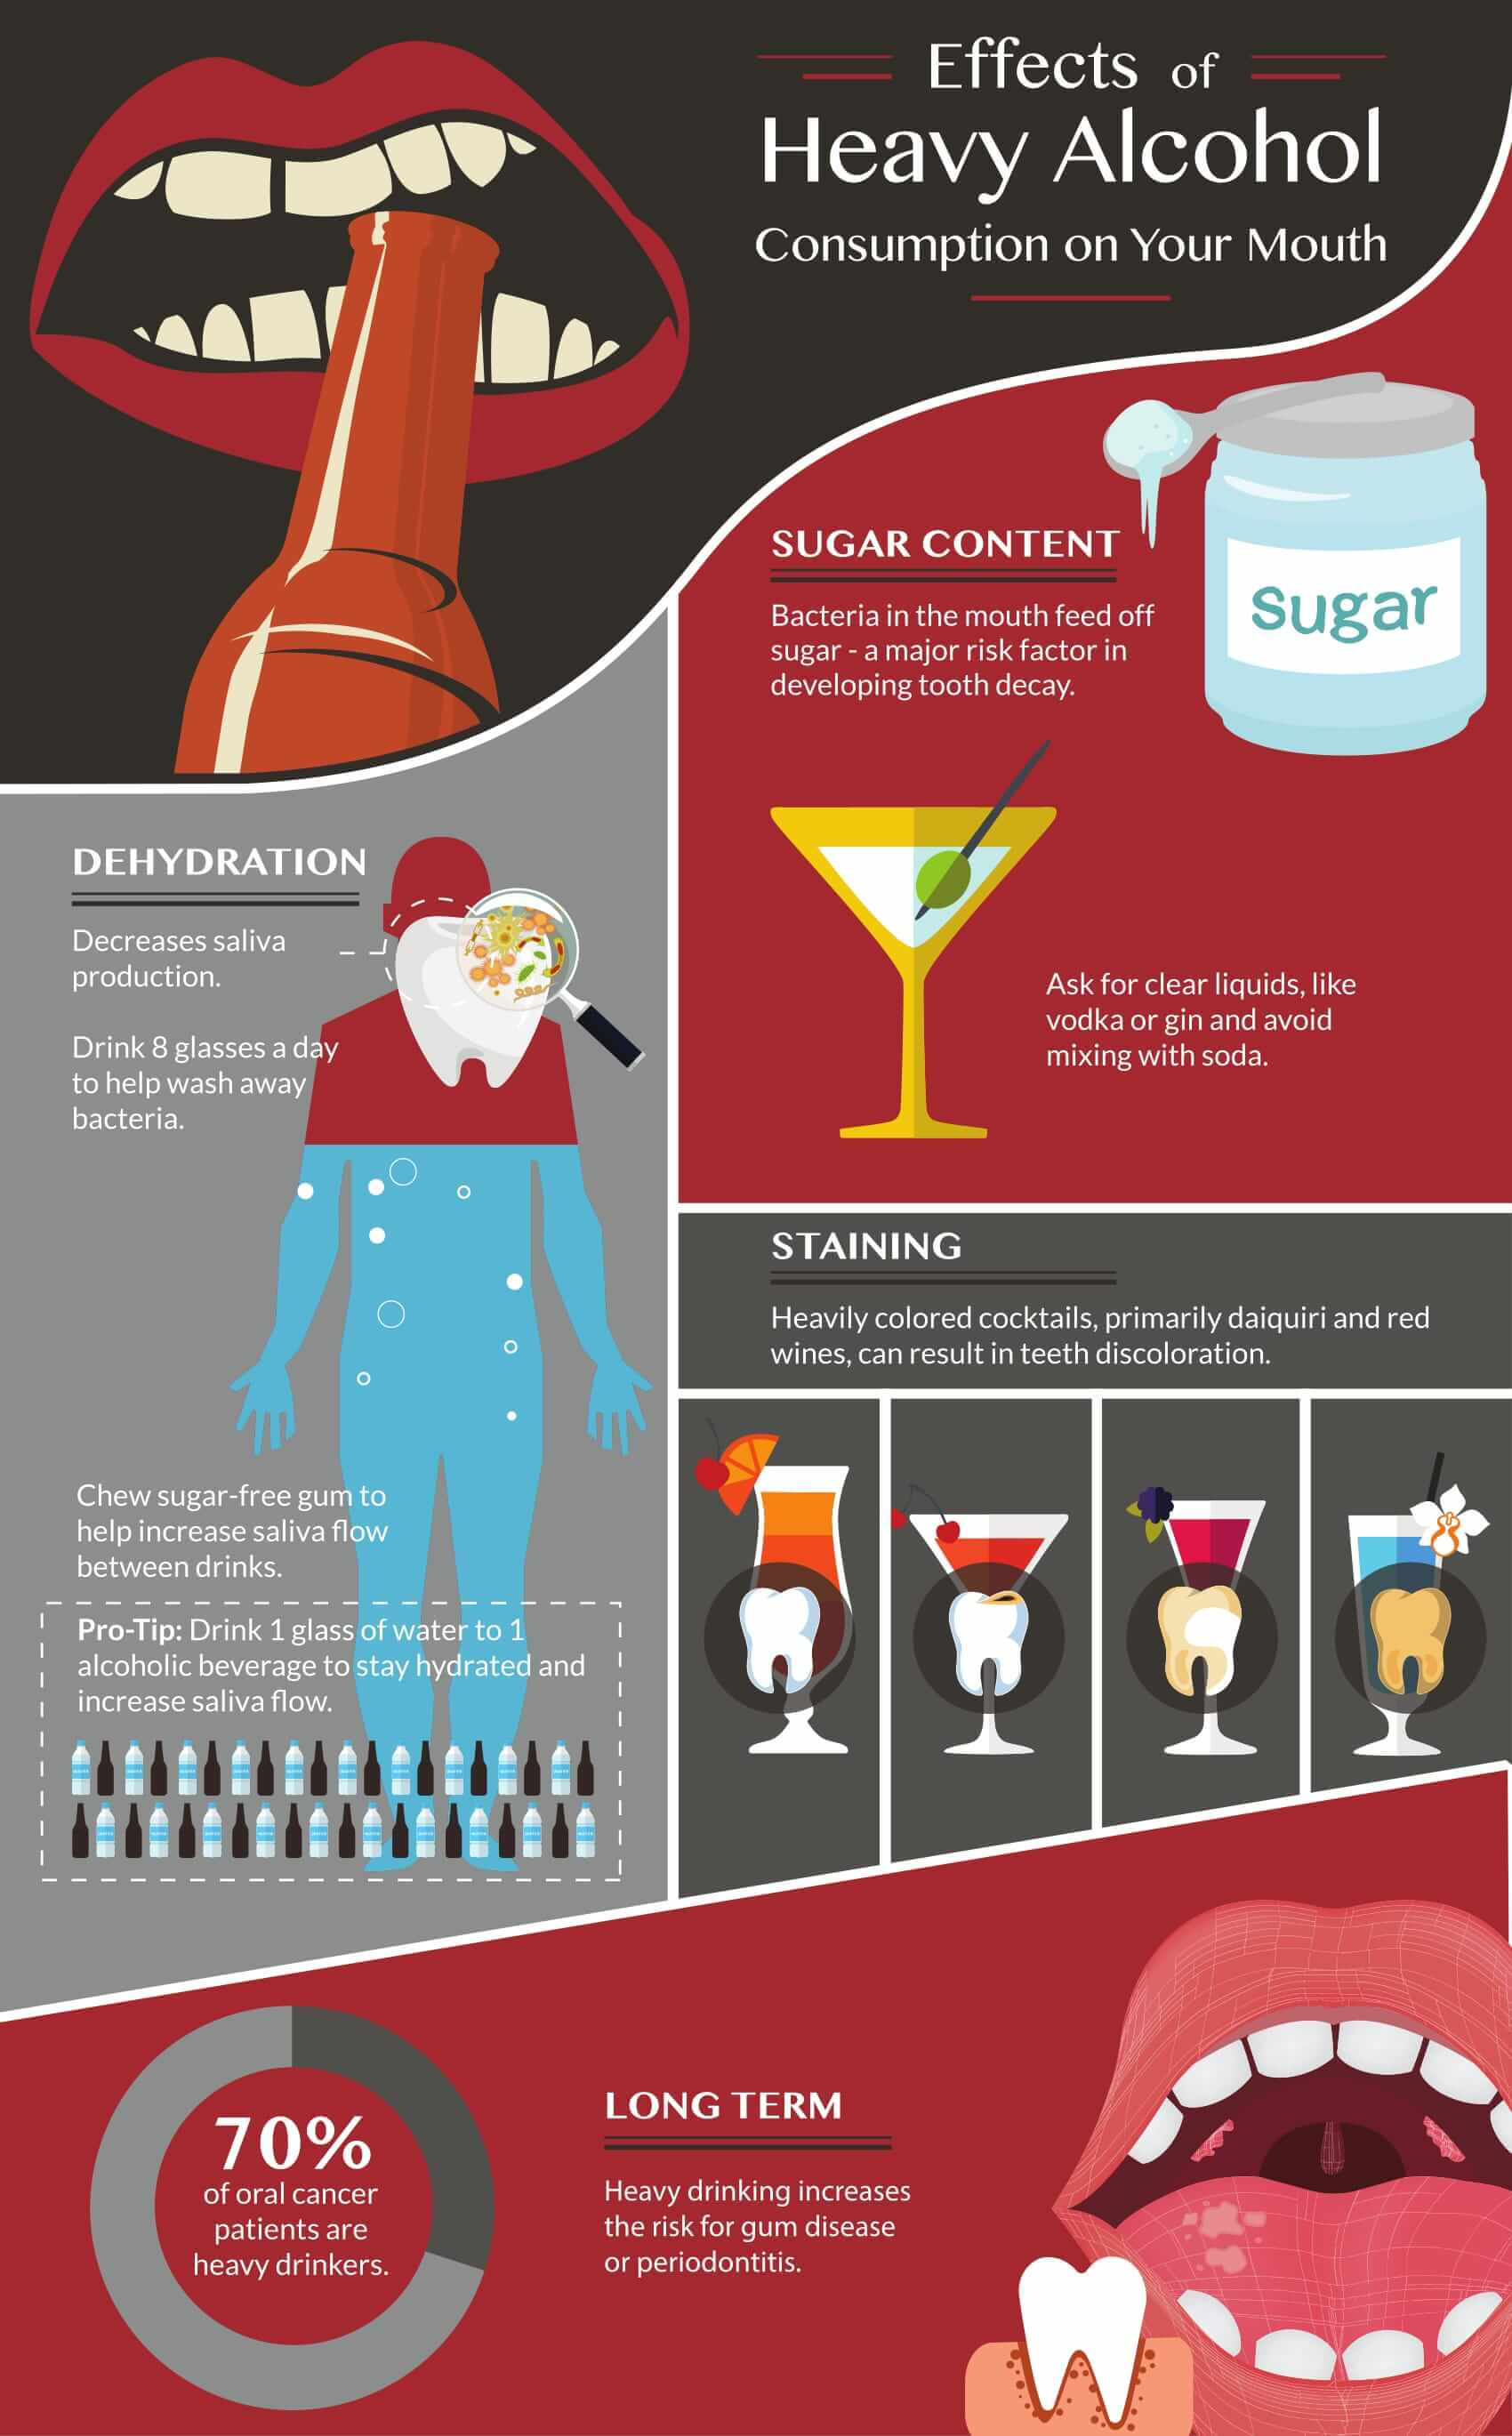 Effects of heavy alcohol consumption